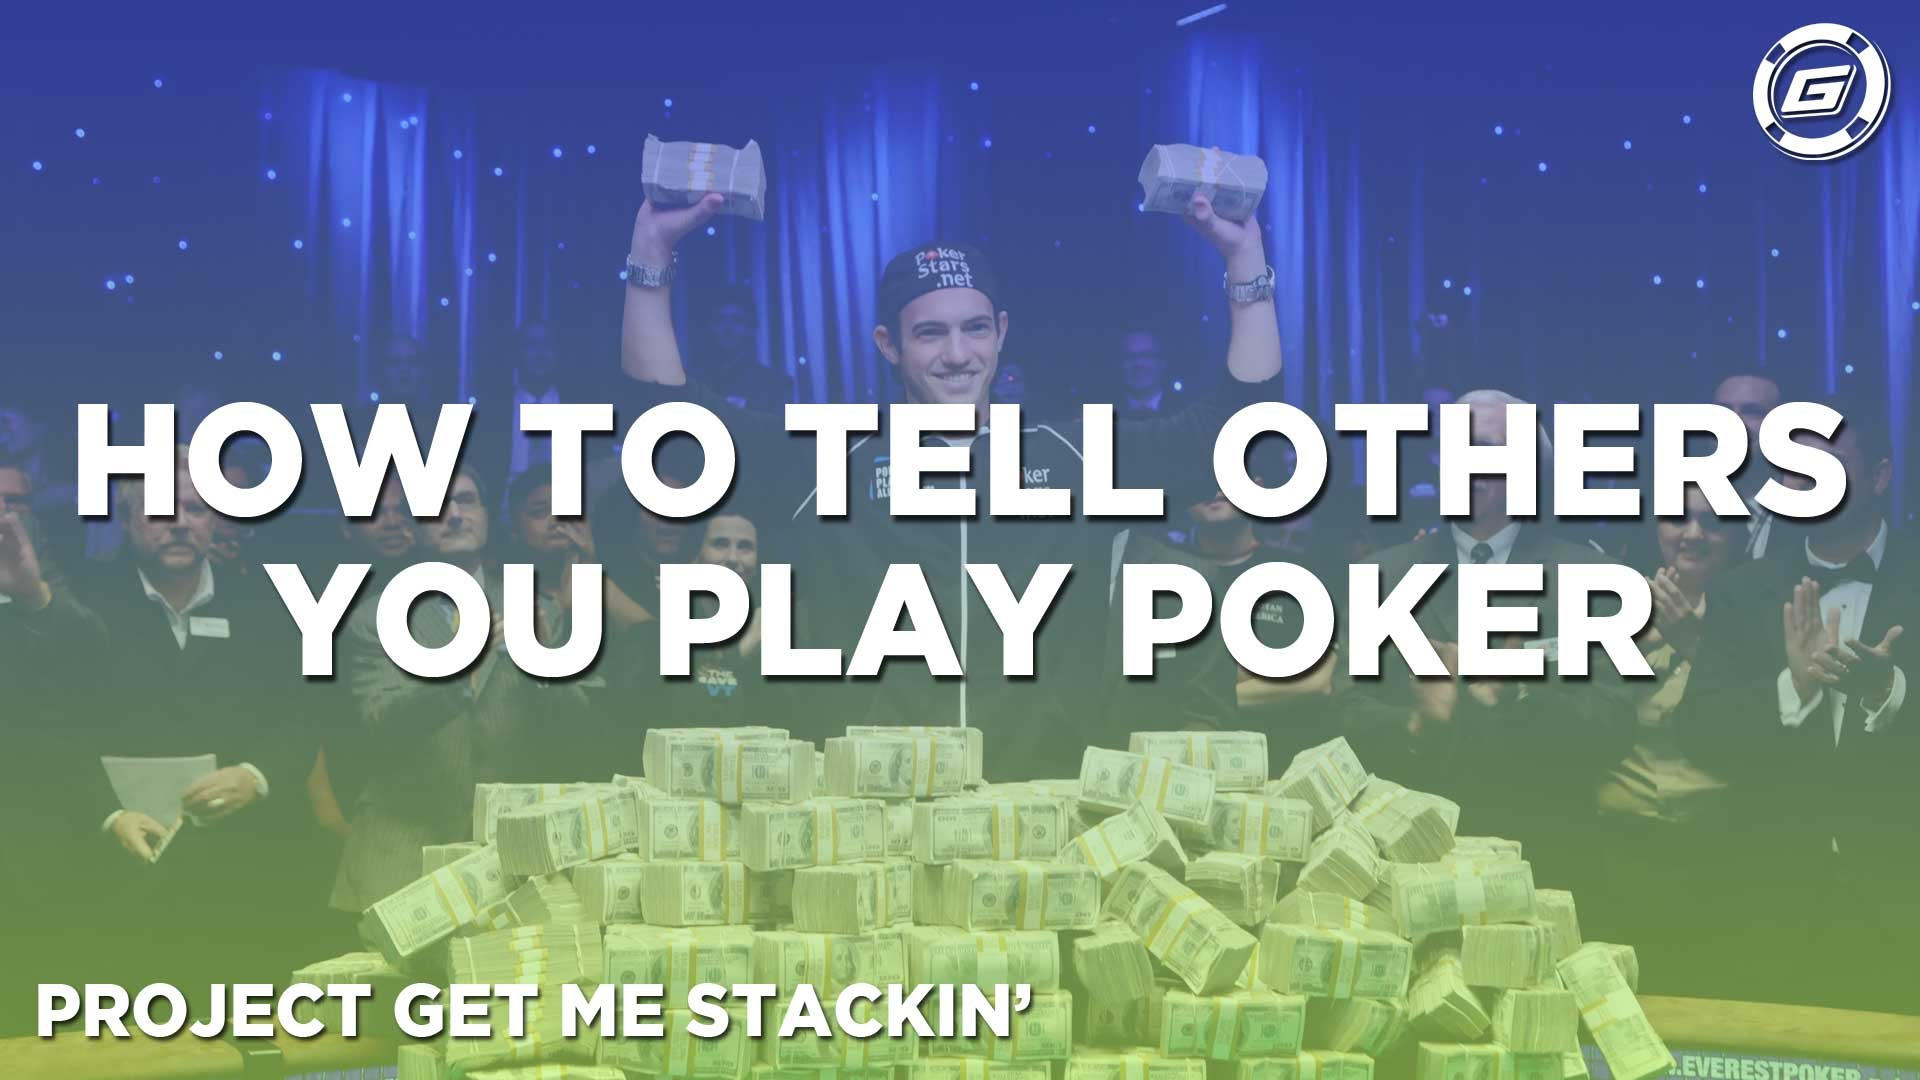 How To Tell Family & Friends You Want To Pursue Poker - LESSON #7